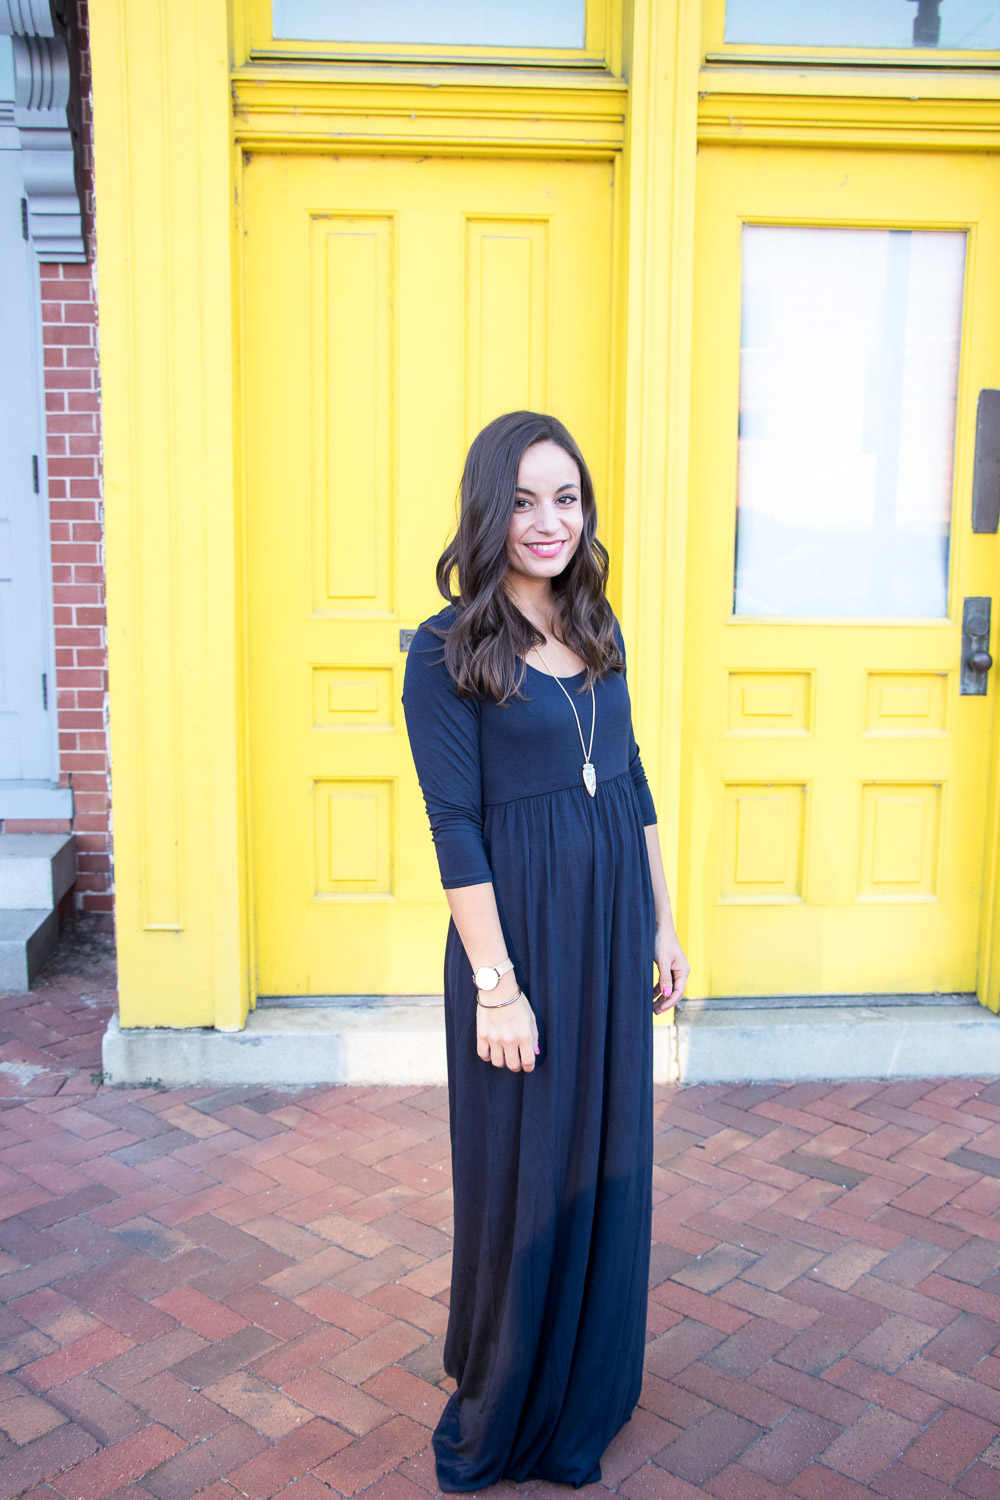 How To Wear A Maxi Dress When You're Petite - Actual Mom Style